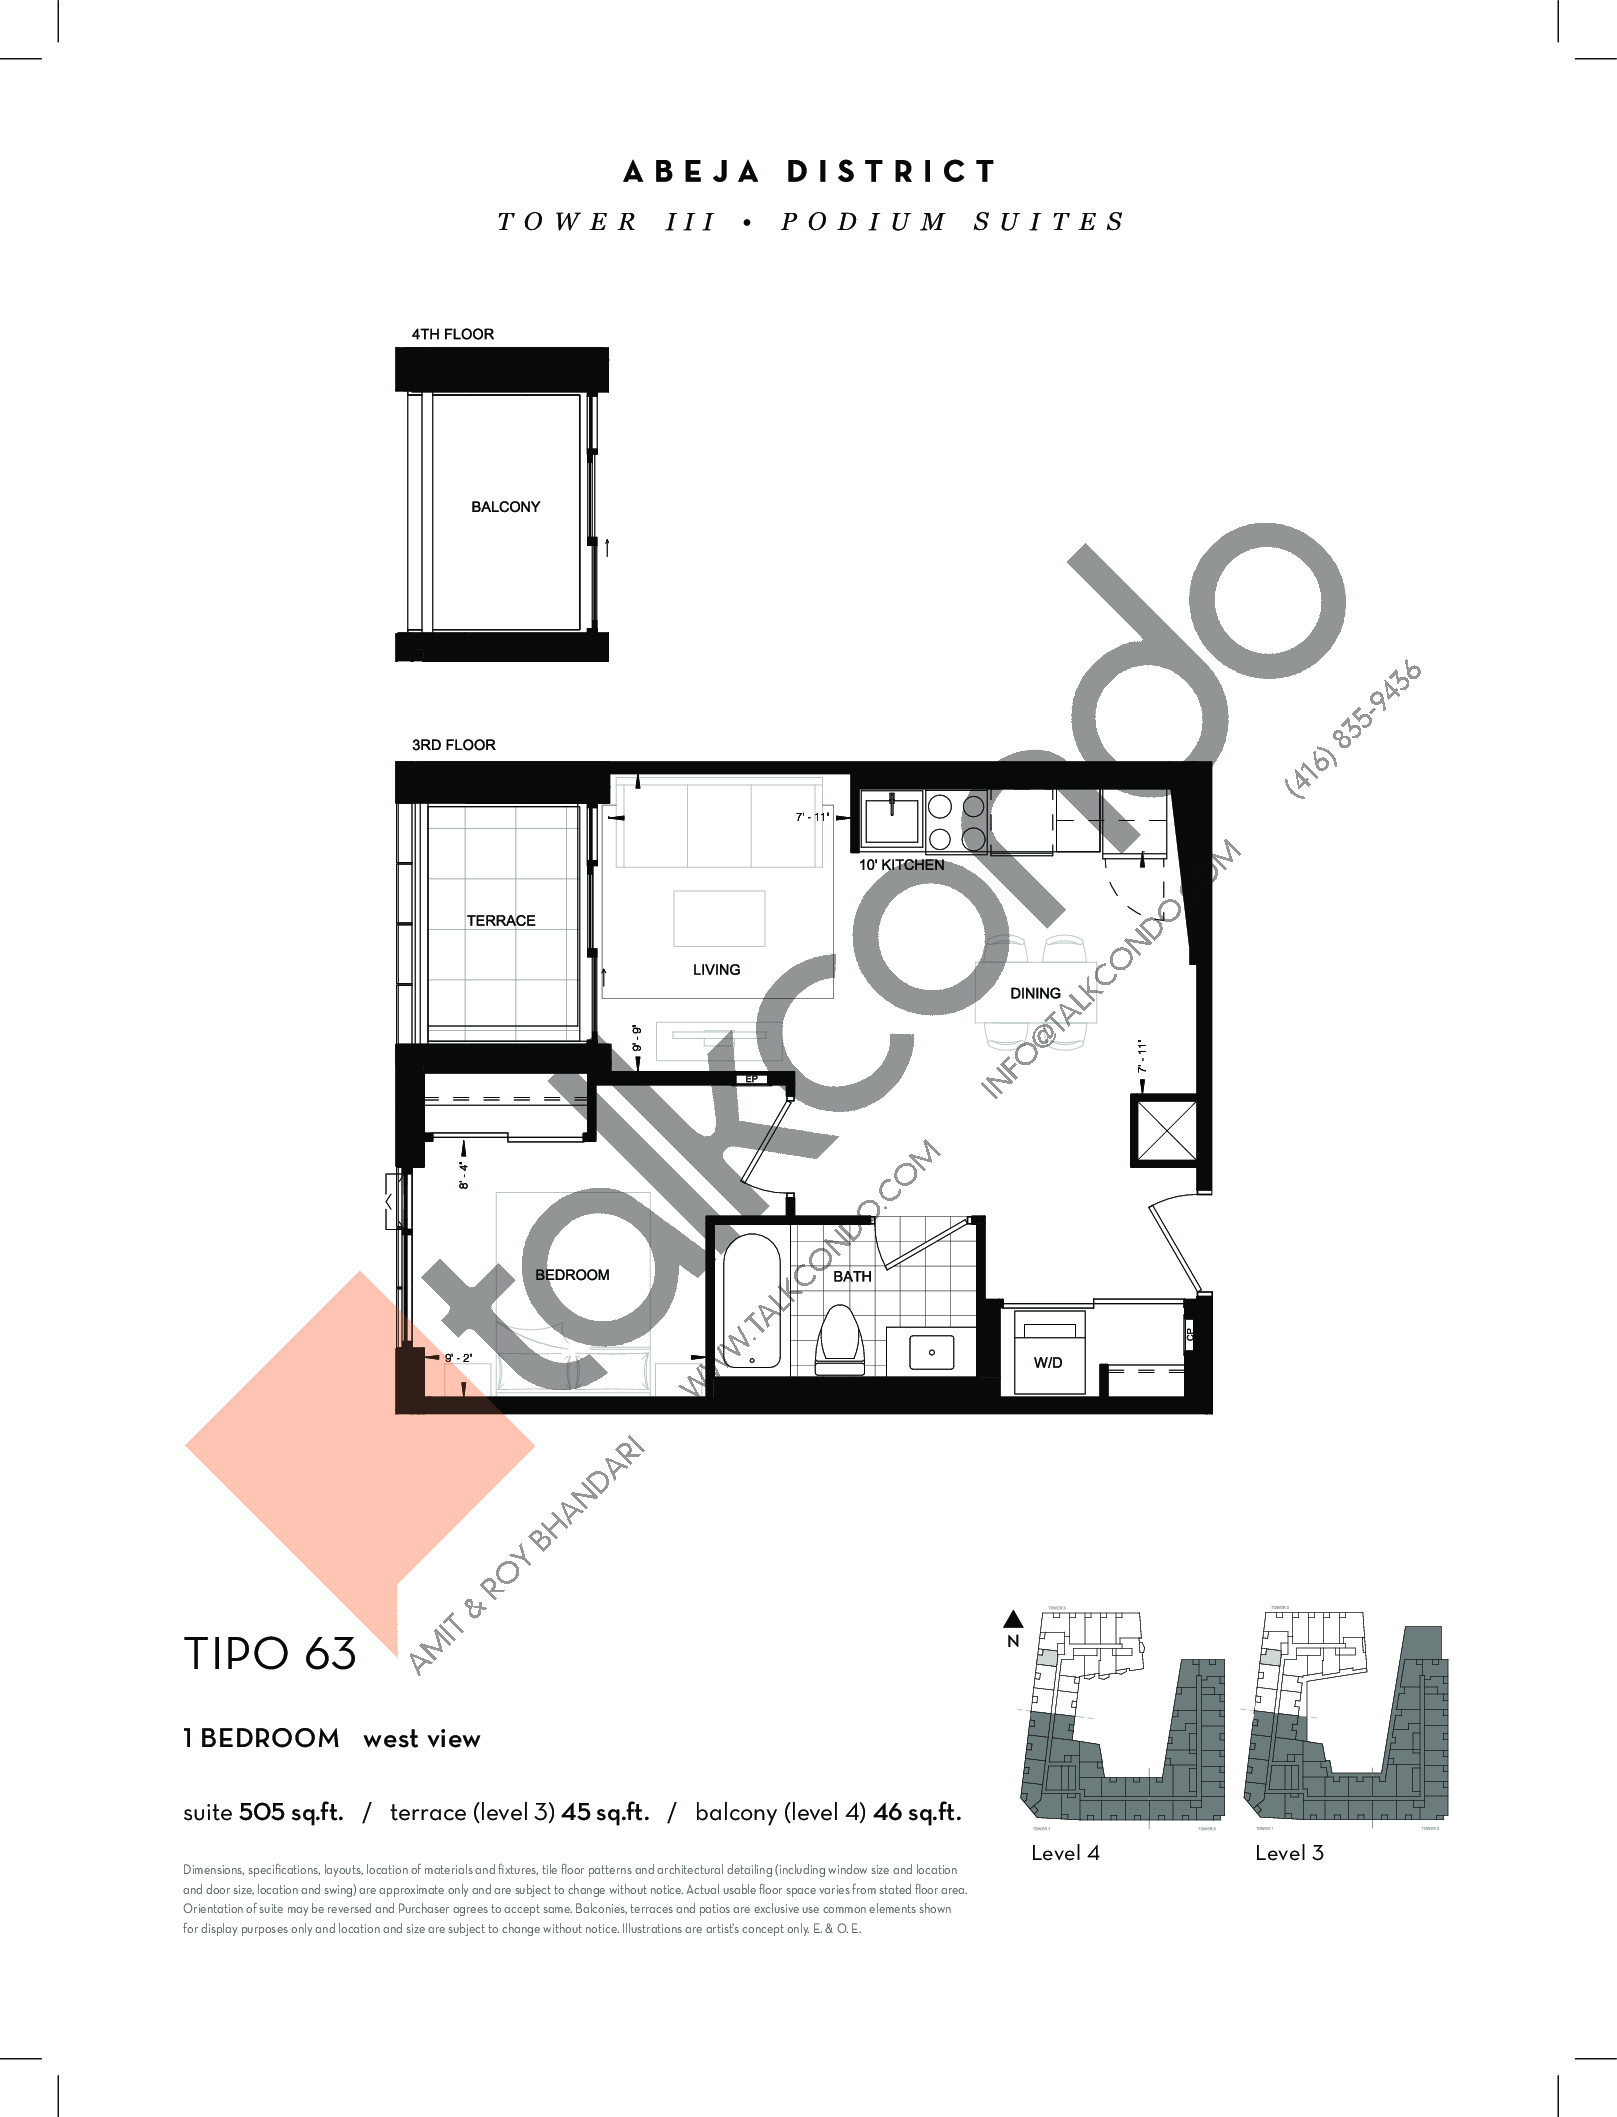 TIPO 63 Floor Plan at Abeja District Condos Tower 3 - 505 sq.ft